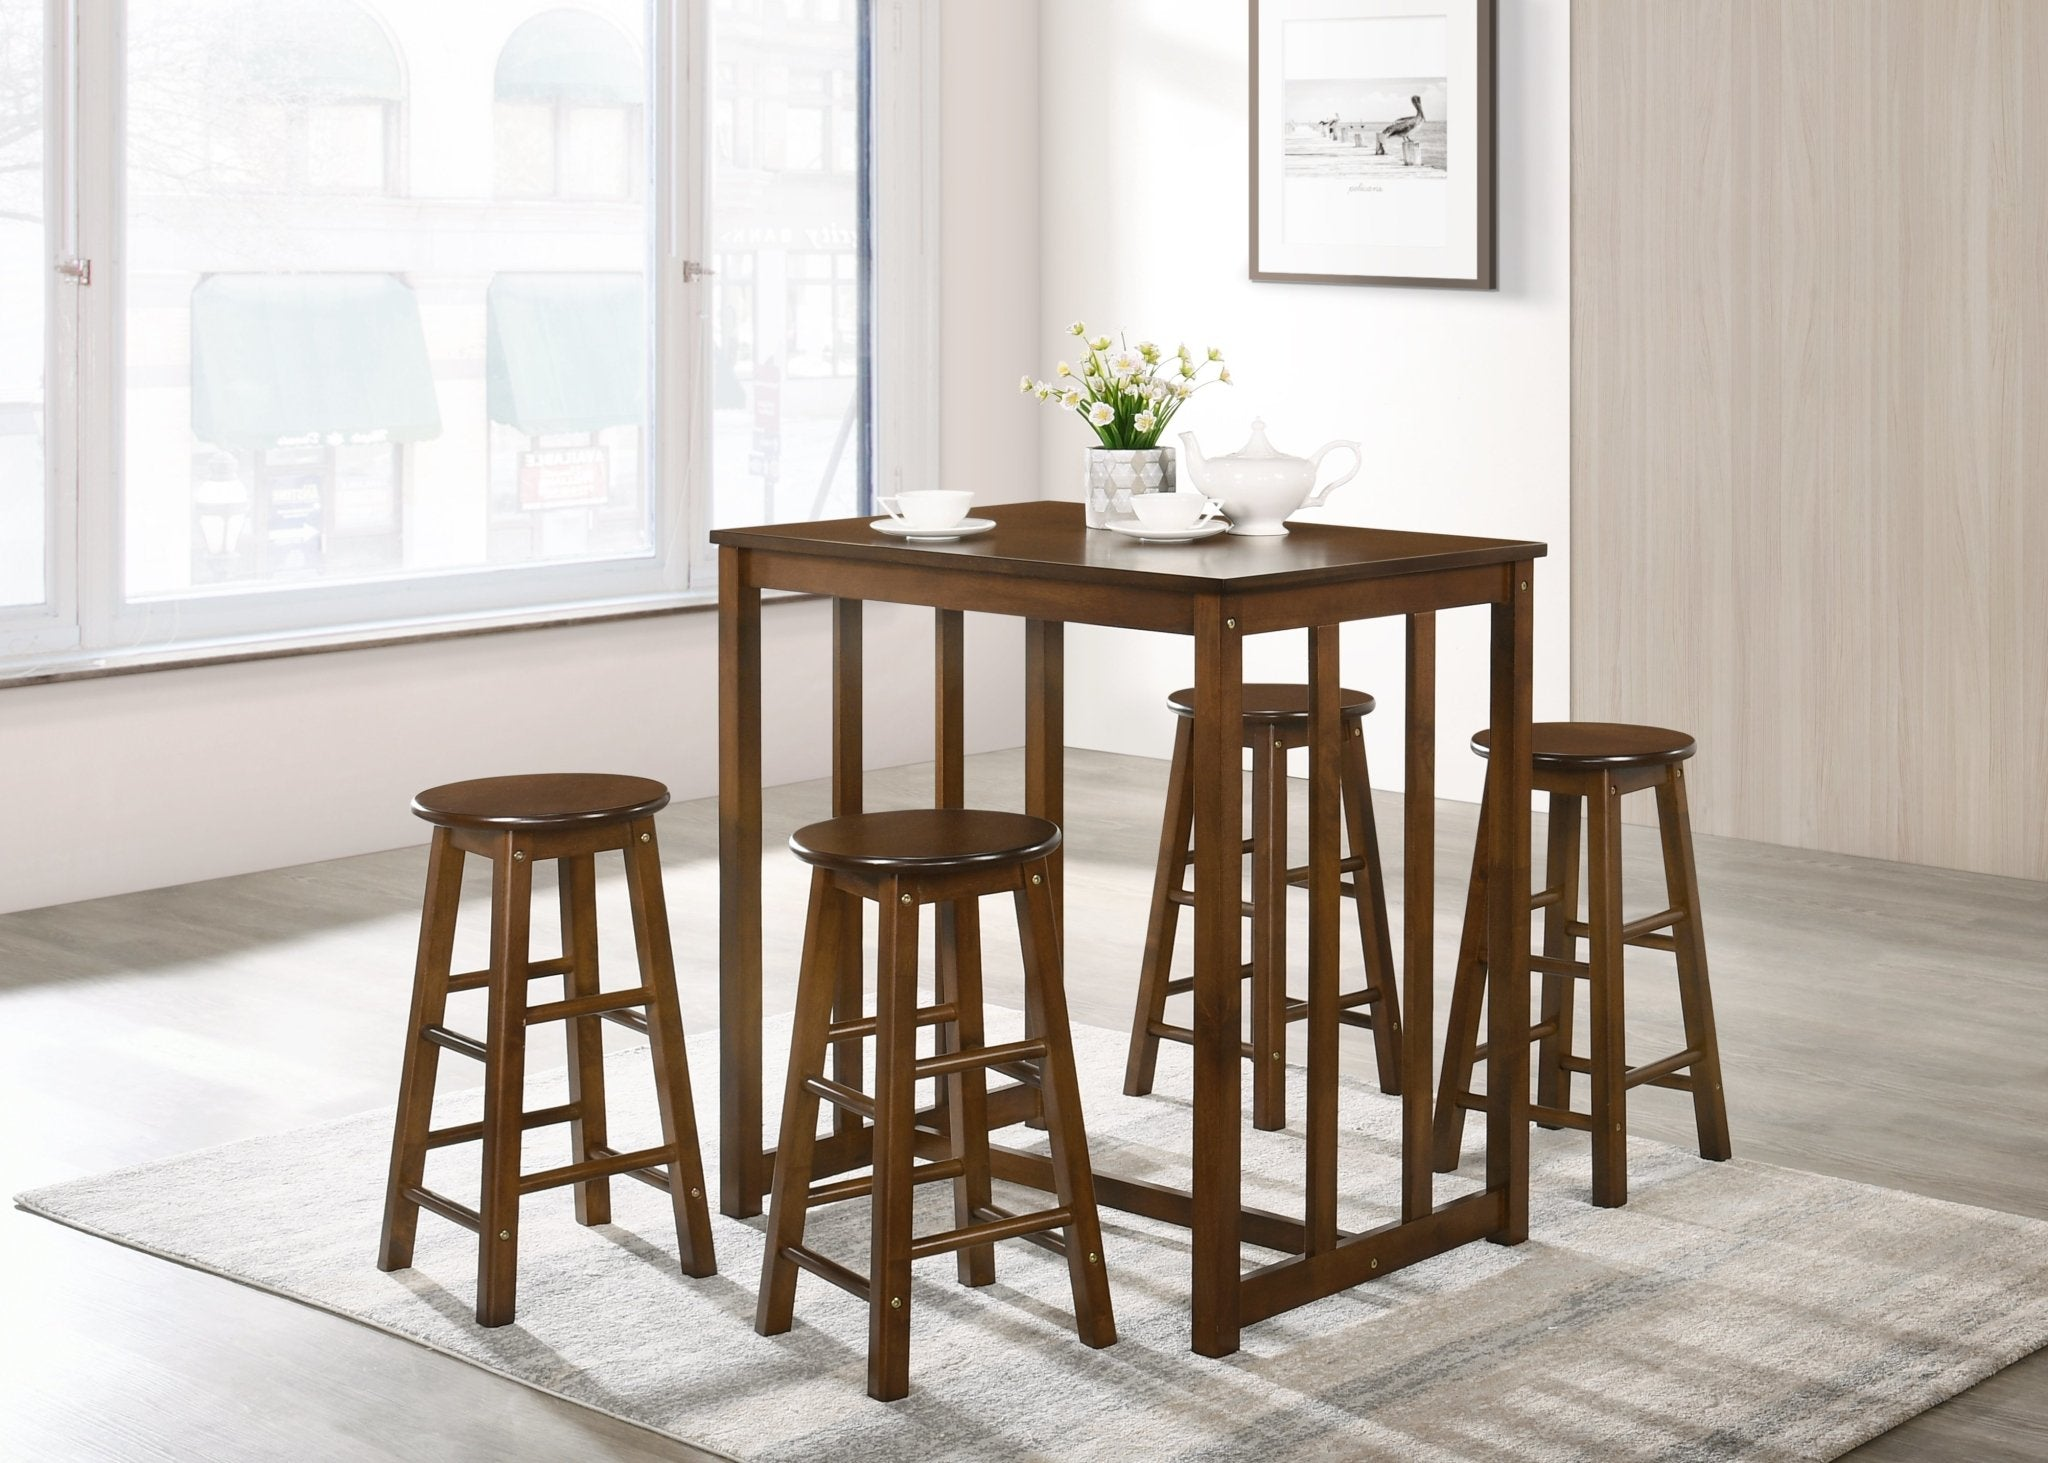 Karin Dining Table Set (5-Piece).